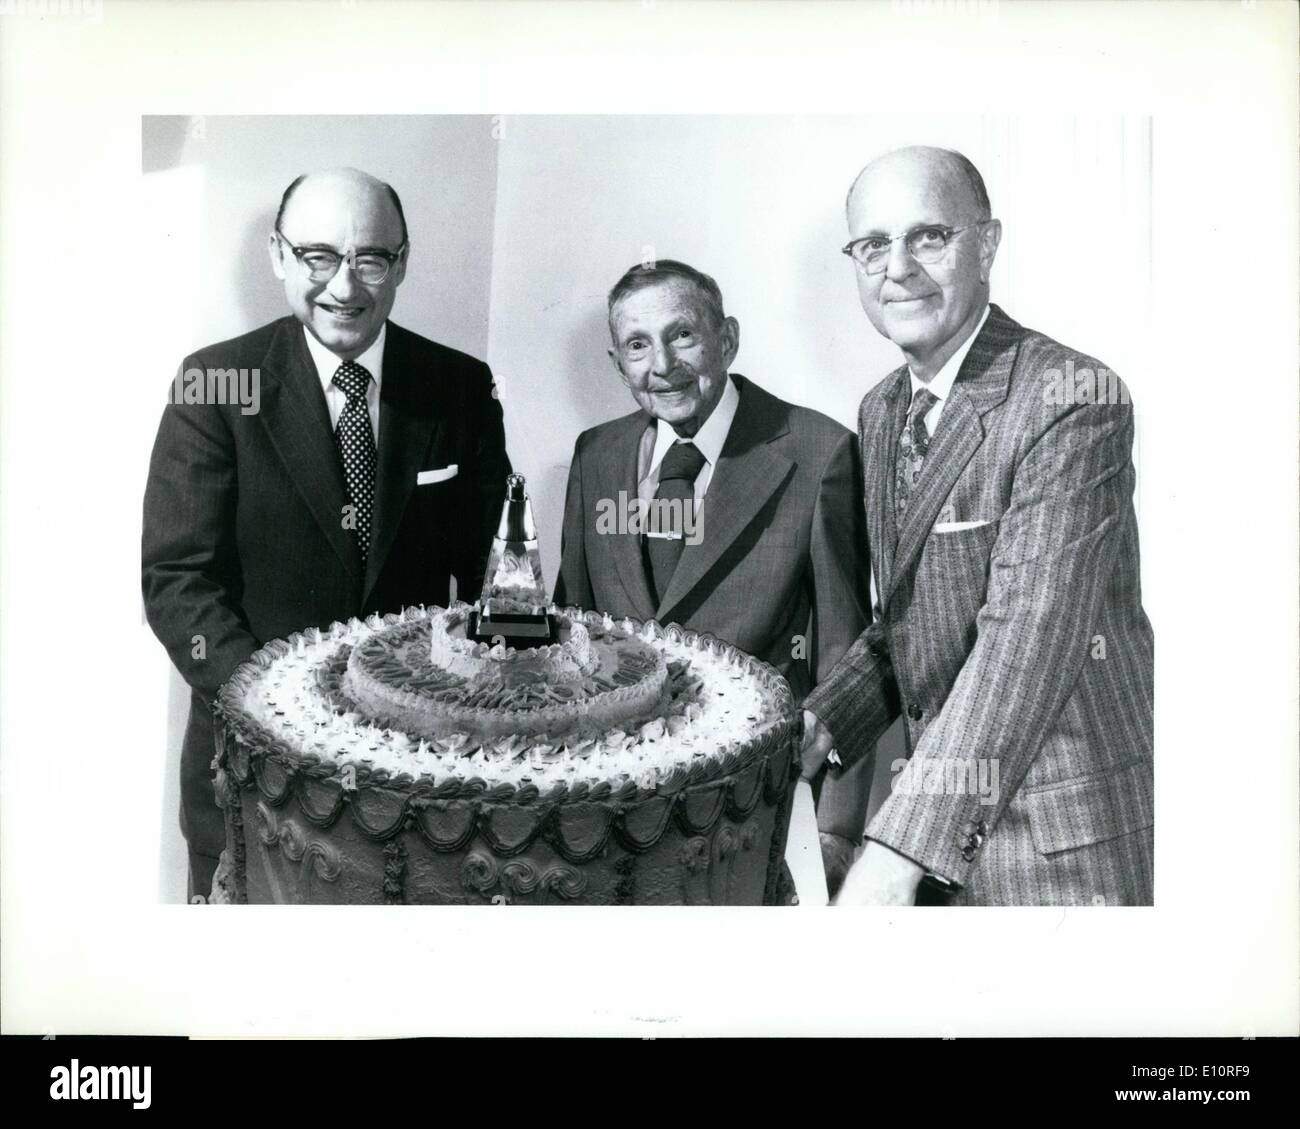 Oct. 10, 1973 - CENTENARY CELEBRATION. Dr. William D. Coolidge, famed inventor of the ductile tungsten used for filaments in virtually all electric lamps and of the Coolidge X-ray tube which made possible modern medical and industrial X-ray technology, observed his 100th birthday in Schenectady, N.Y., on October 23. Dr. Coolidge joined the staff of the General Electric Research Laboratory in 1905, and was its director from 1932 to 1945. He was succeeded by Dr. C. Guy Suits (right), director until 1965, and by Dr. Arthur M - Stock Image